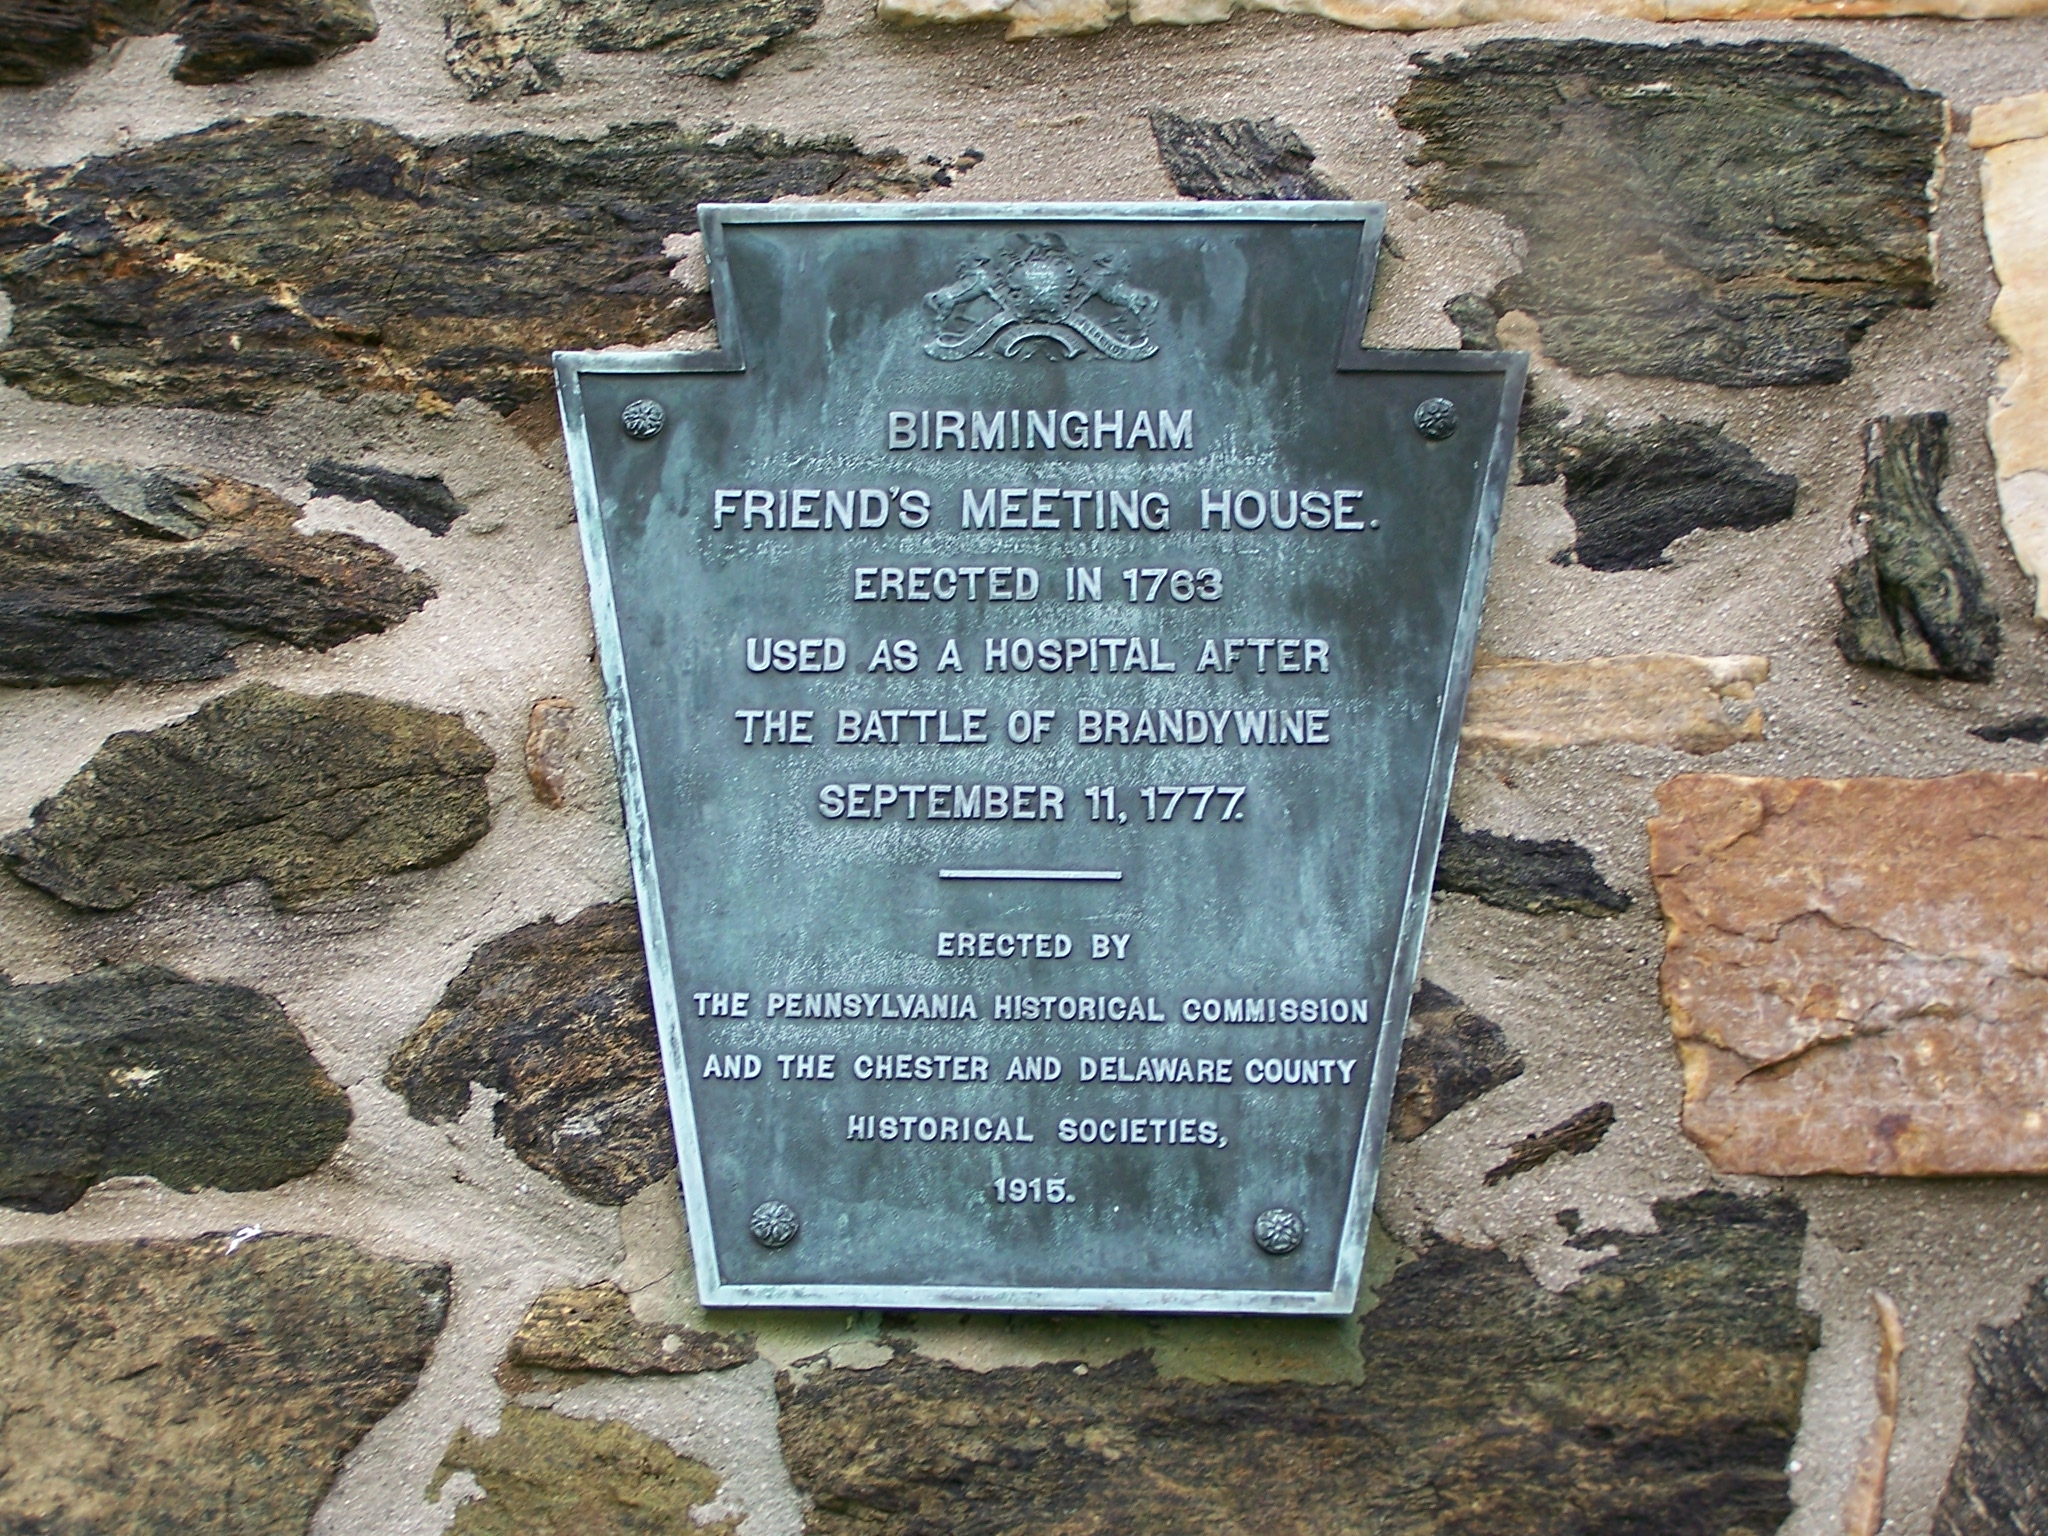 Birmingham Friends Meeting House Marker